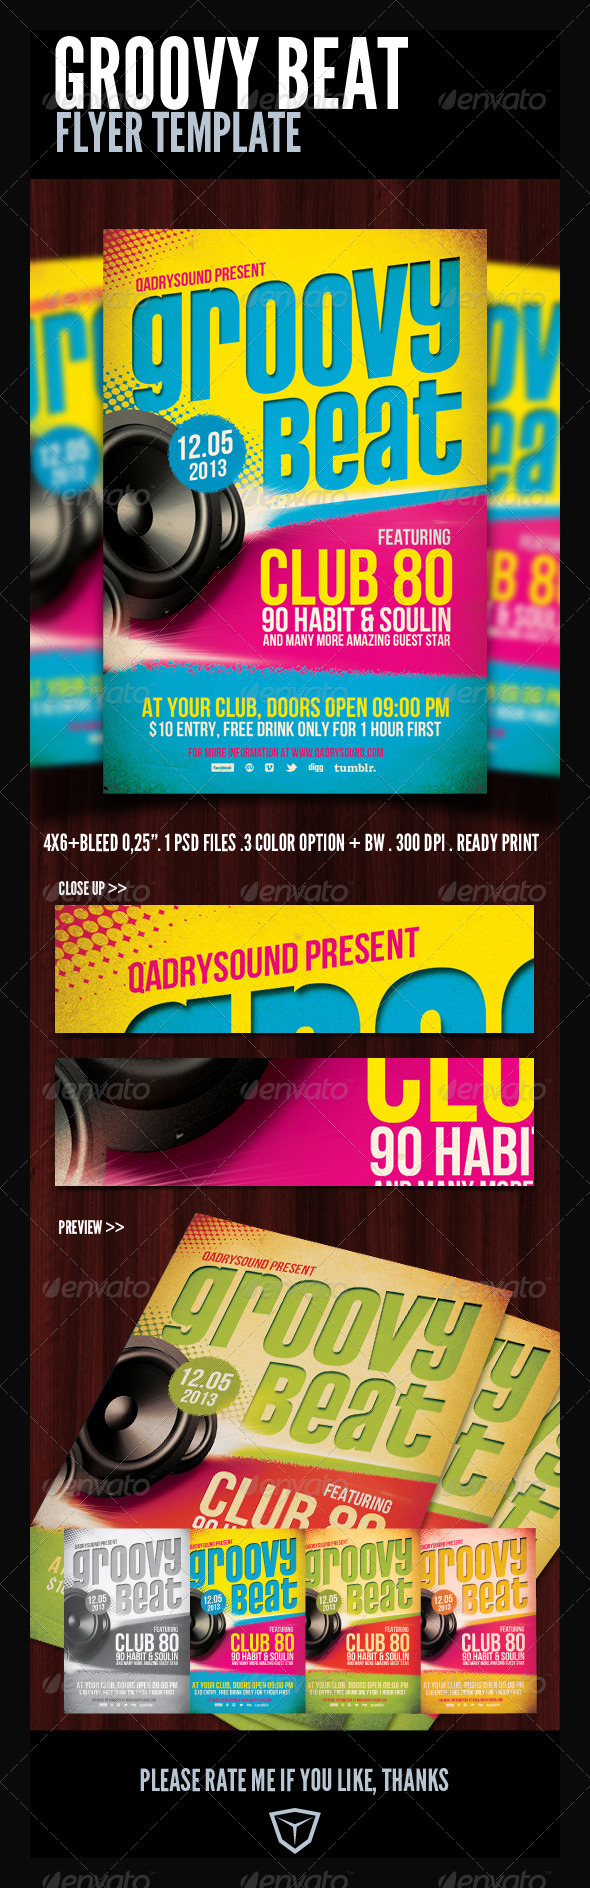 GraphicRiver Groovy Flyer Poster Template 4254488